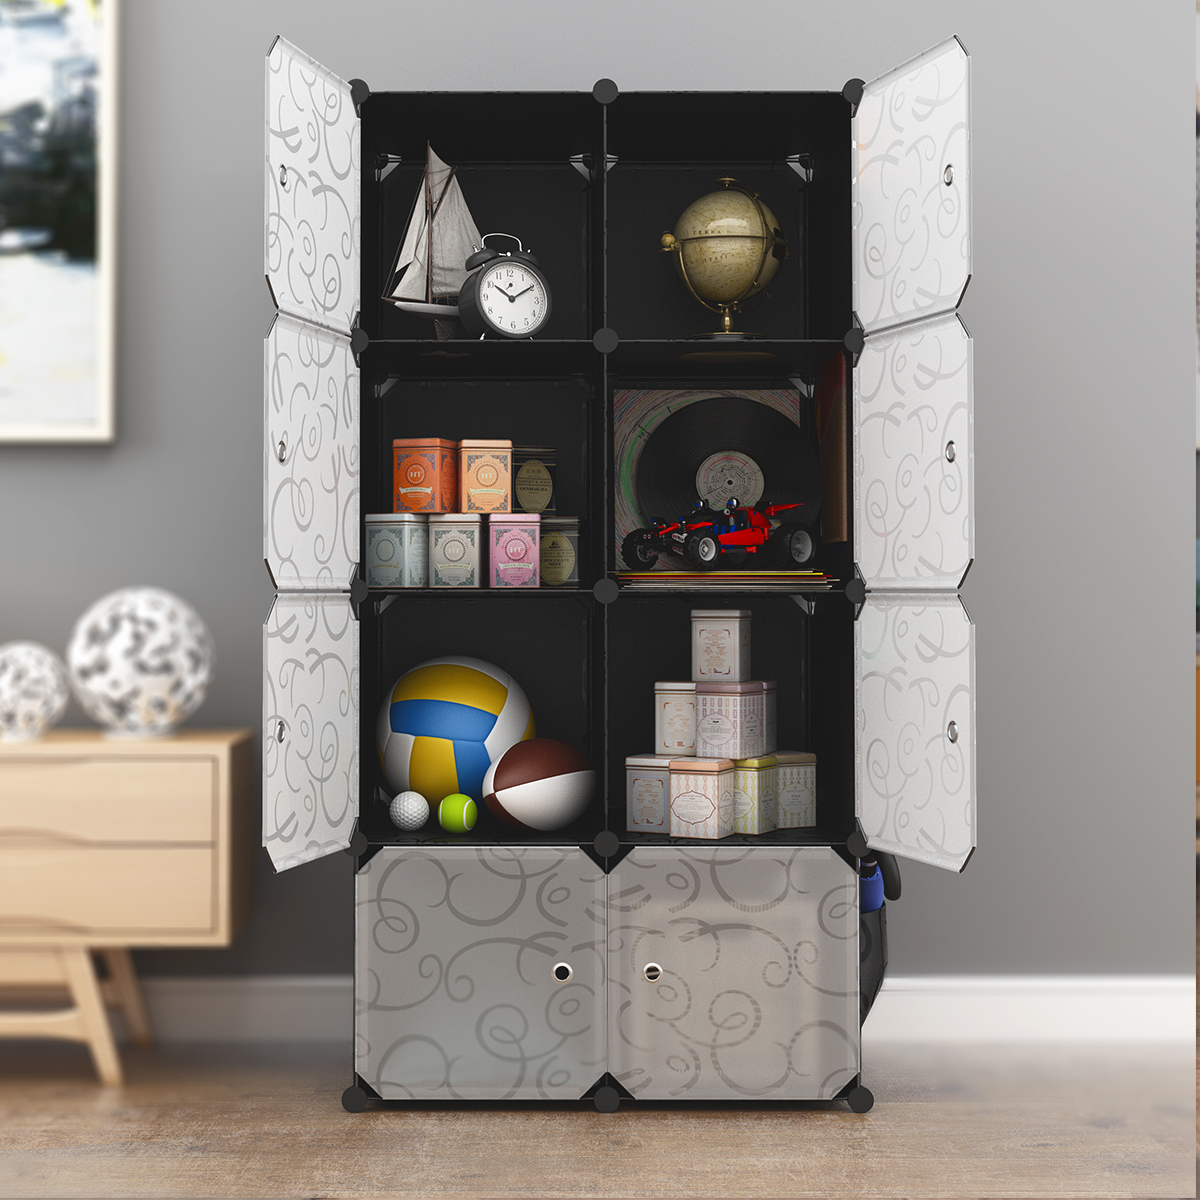 Diy Modular Bookcase Closet System Cabinet With Doors For